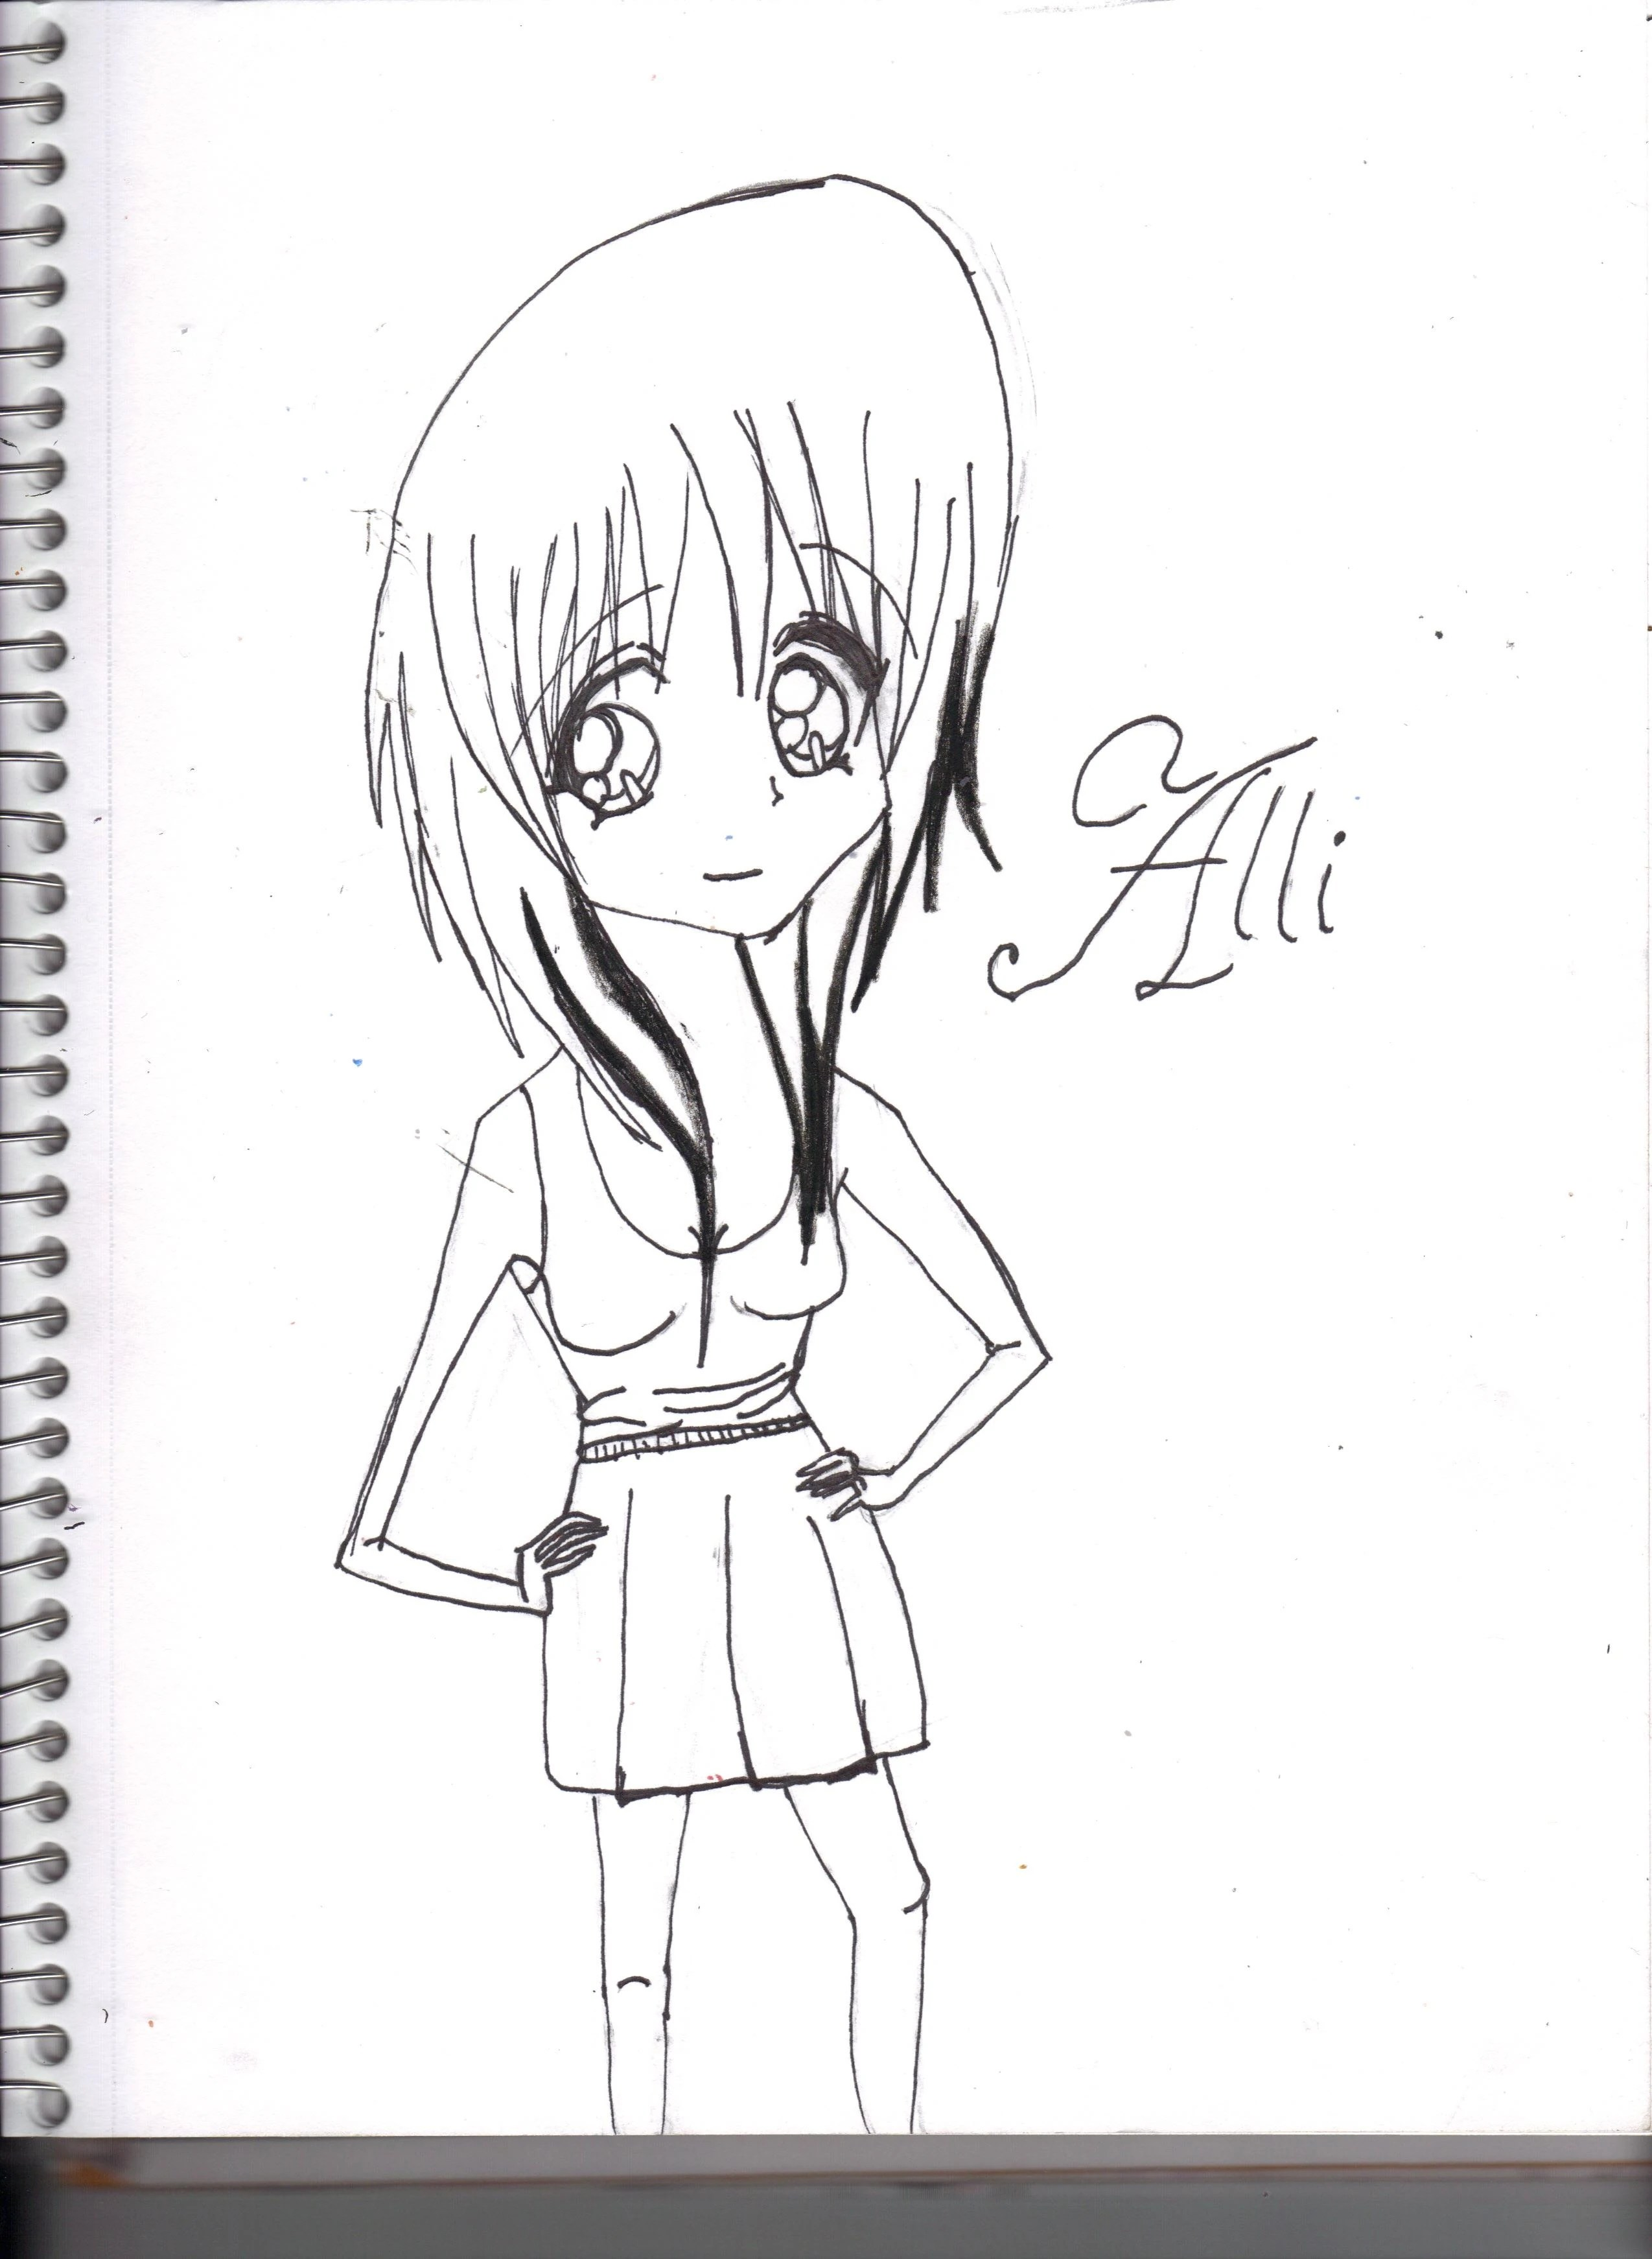 Coloring page of alli